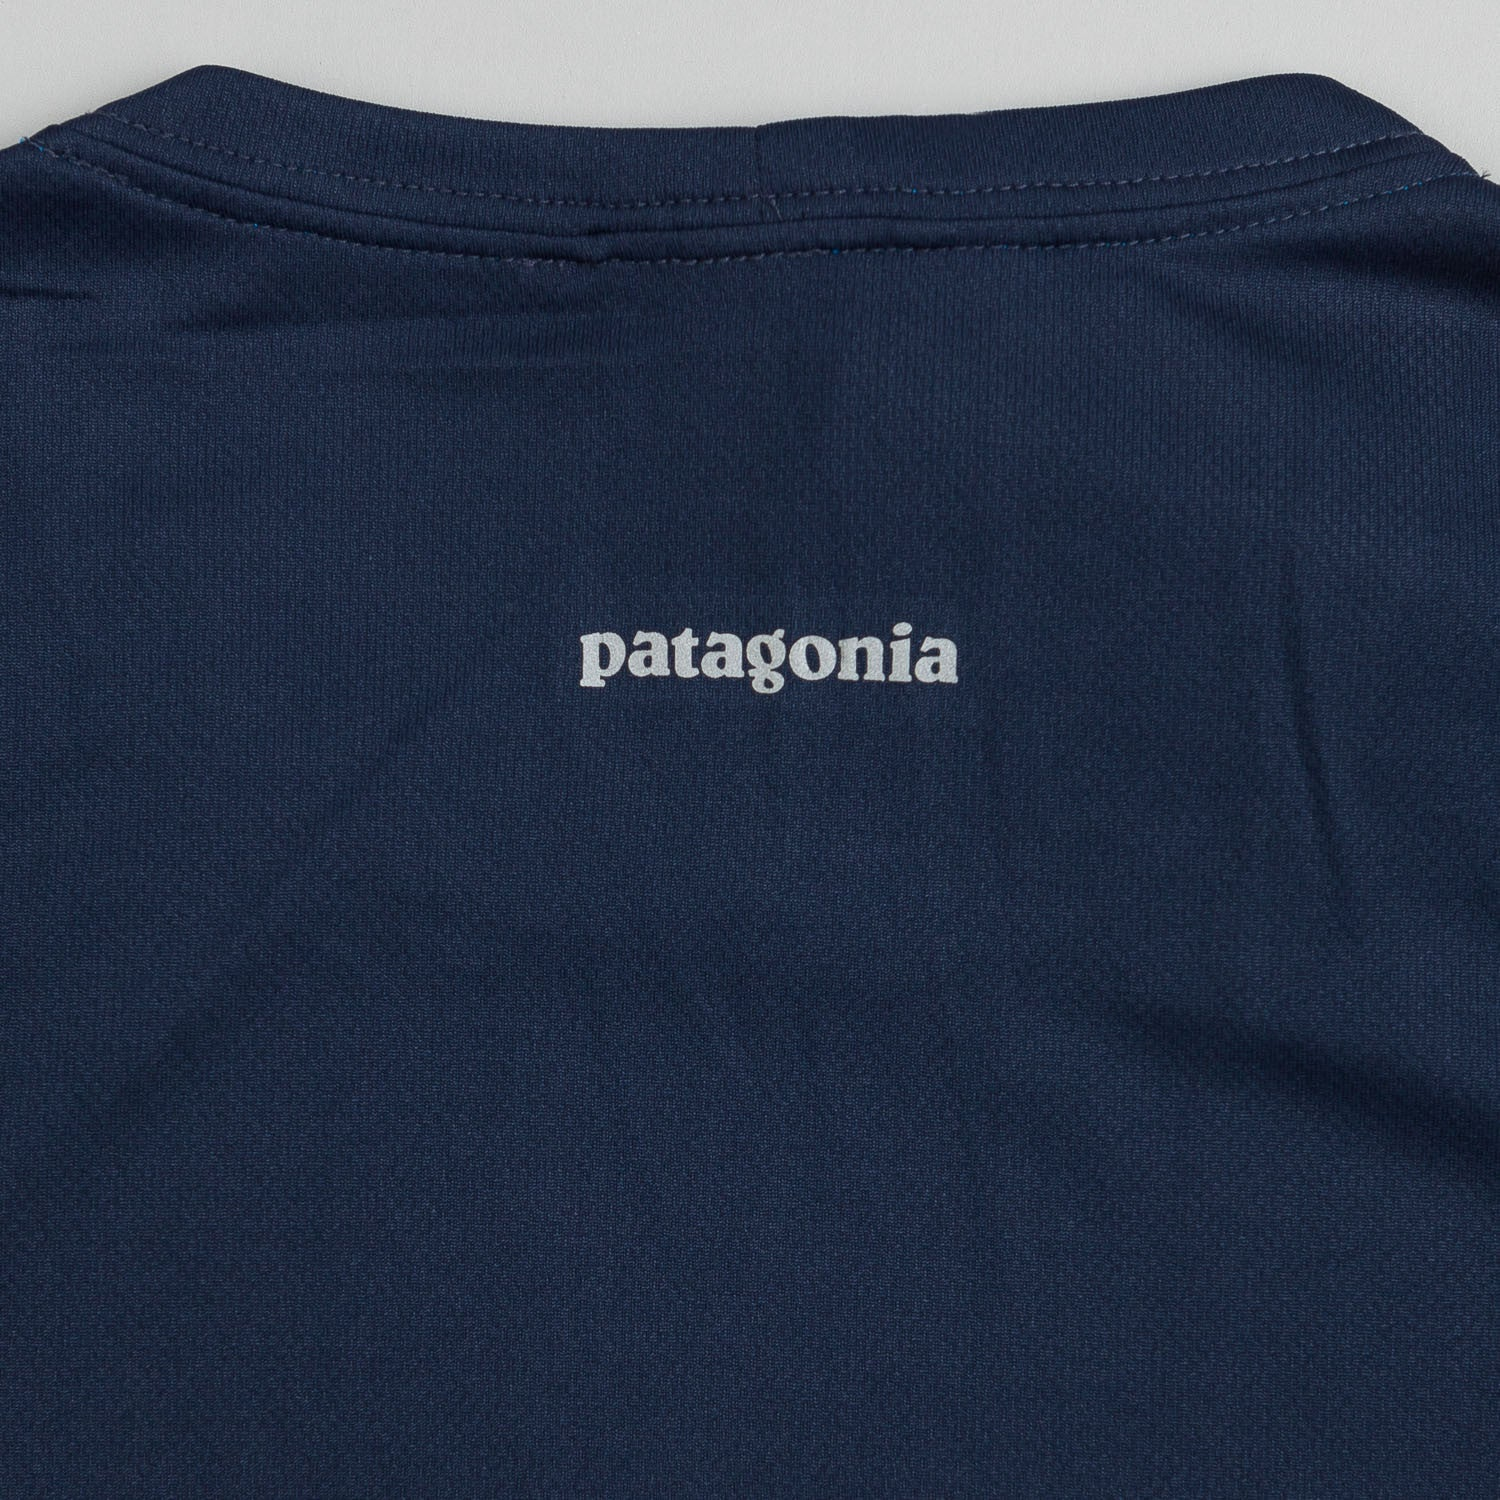 Patagonia Fore Runner Long Sleeve T-Shirt - Navy Blue